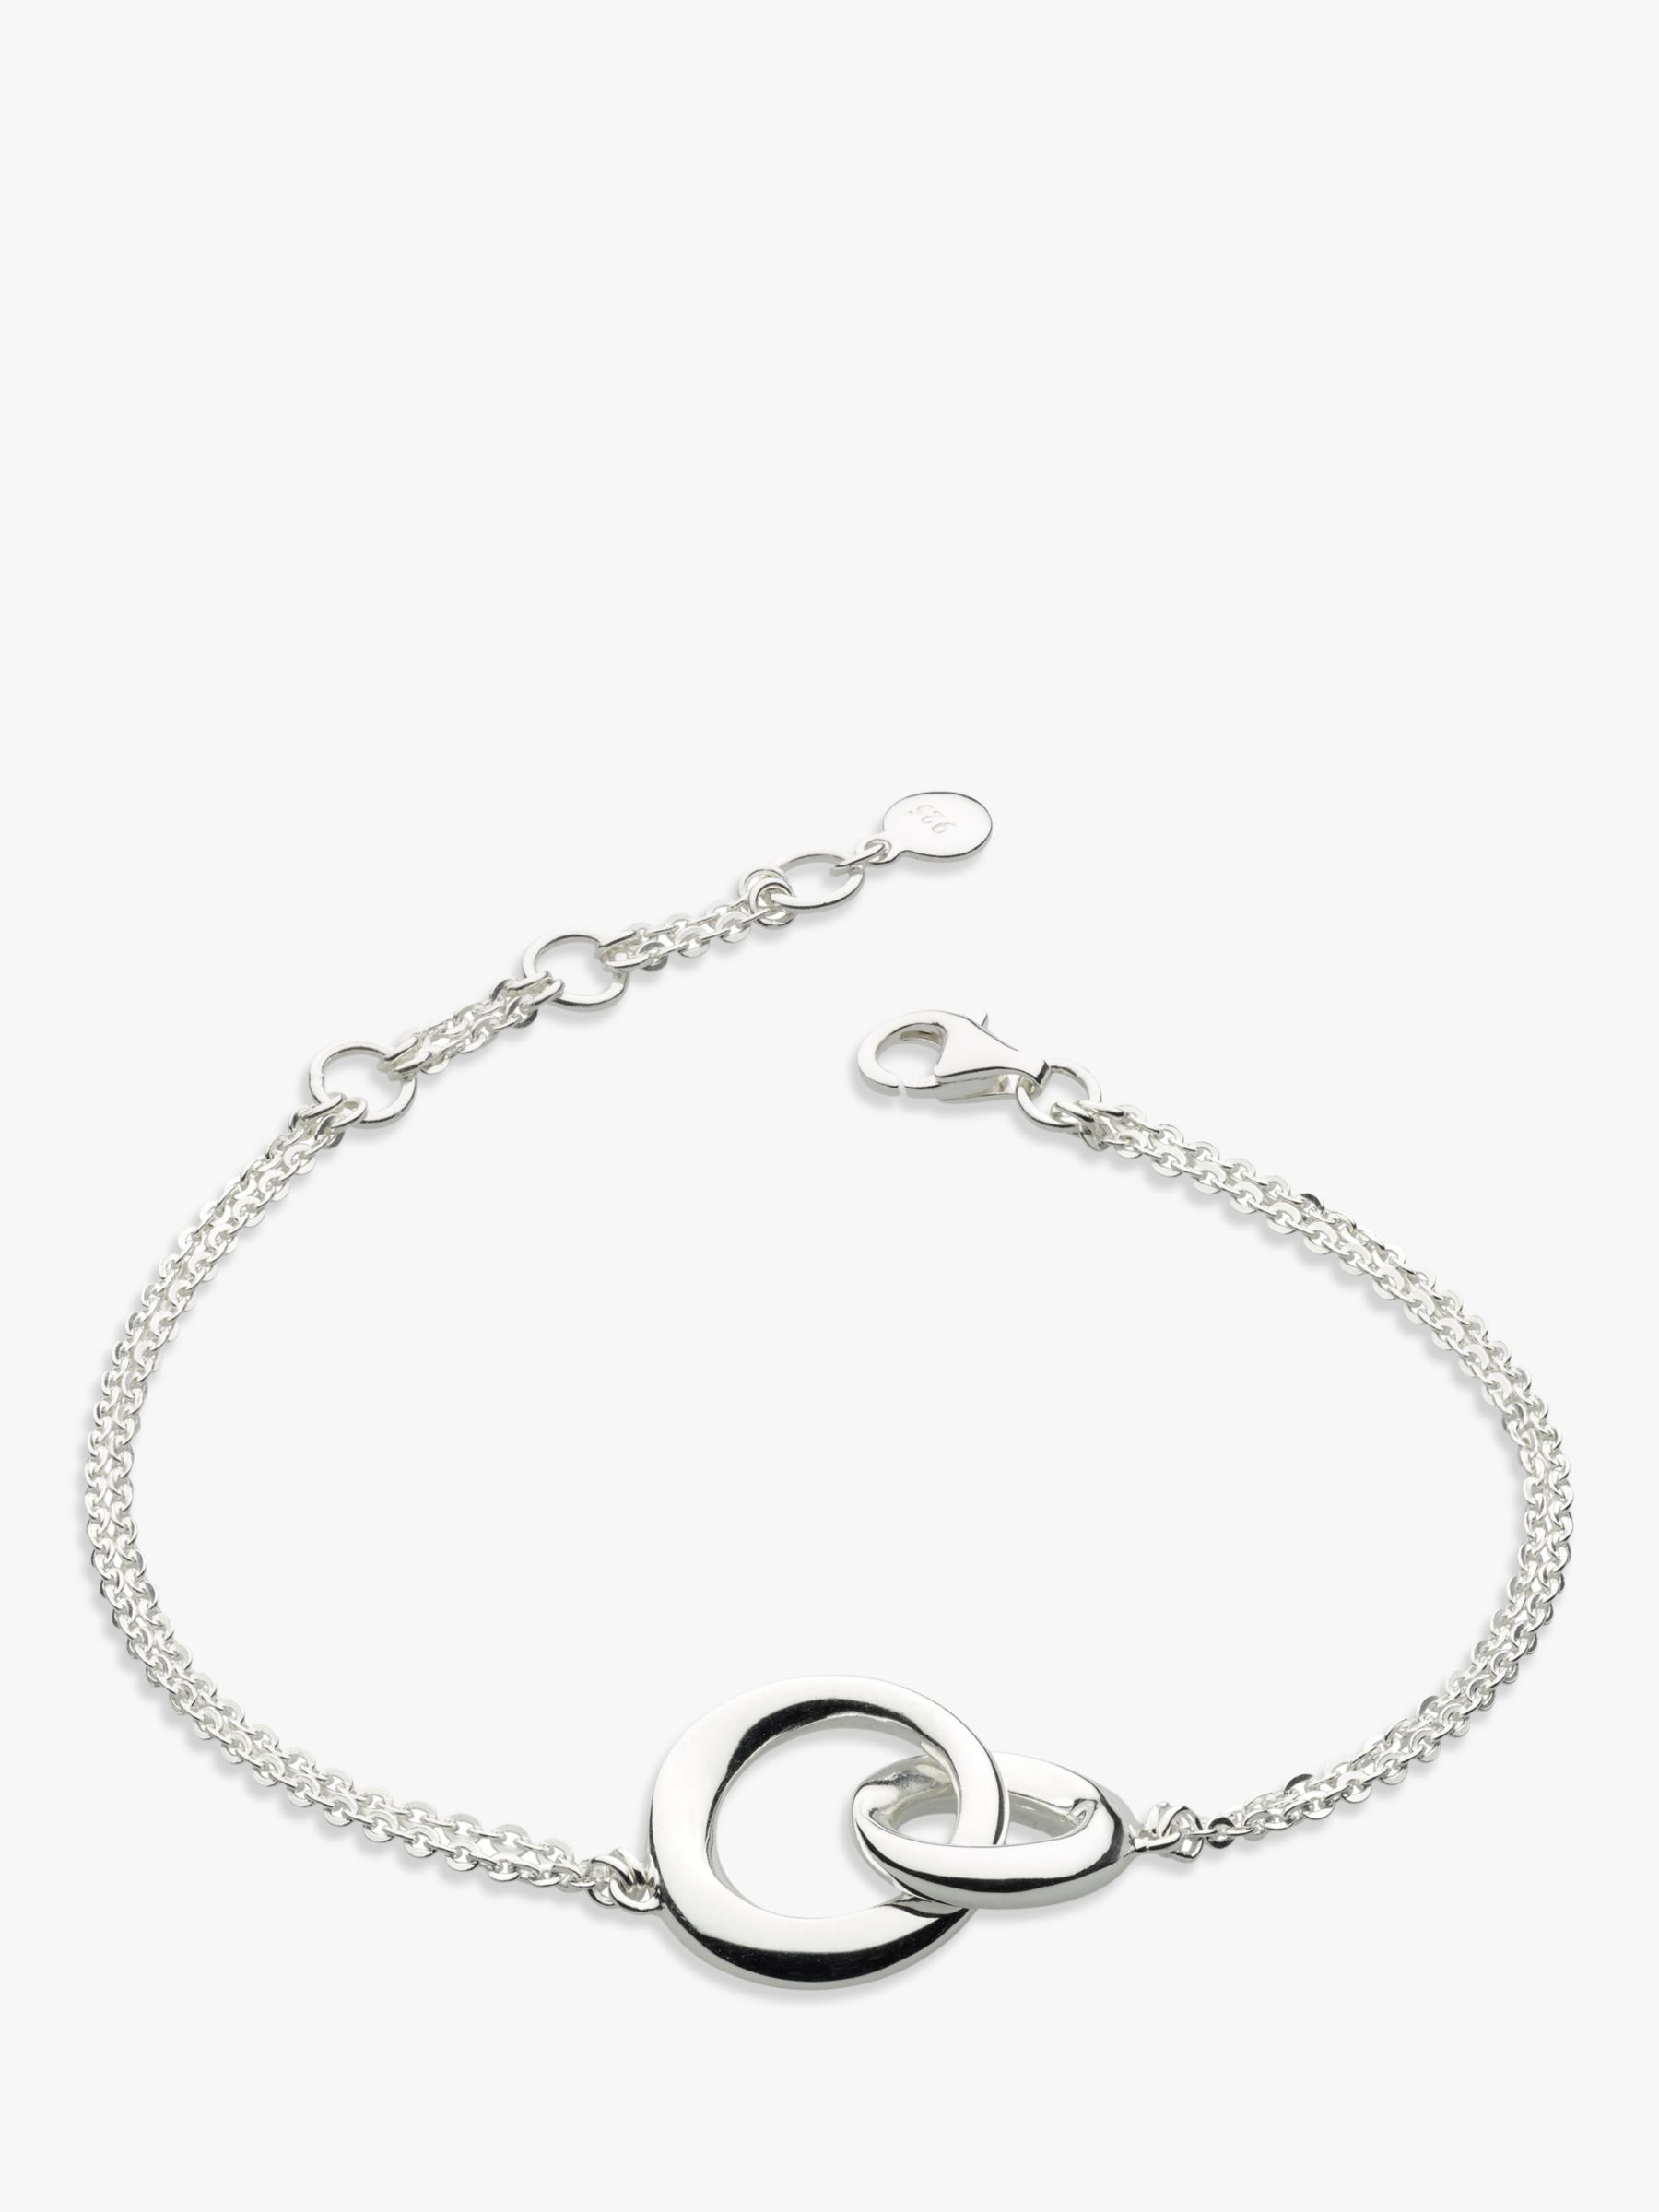 Kit Heath Kit Heath Bevel Double Link Chain Bracelet, Silver